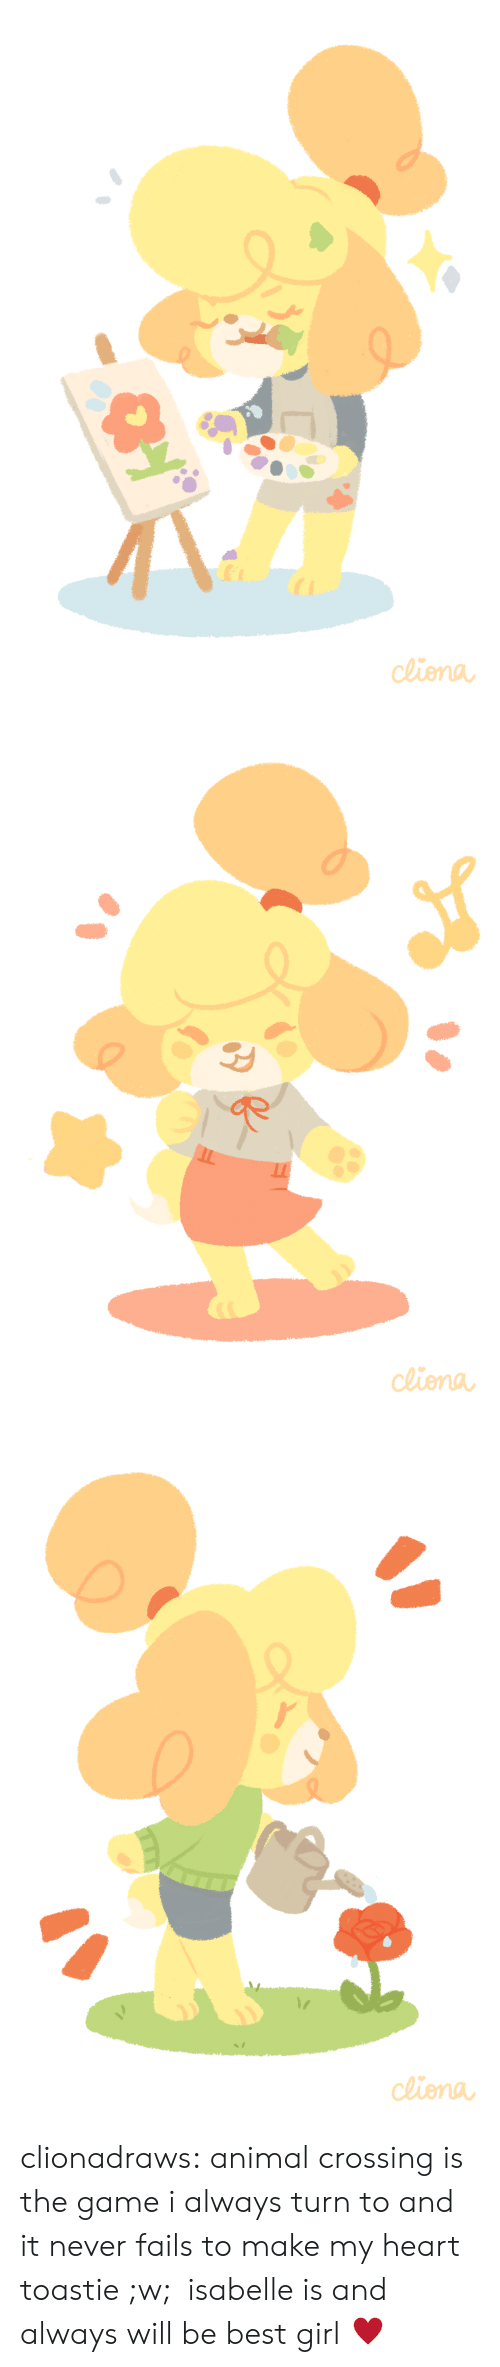 Toastie: de clionadraws:   animal crossing is the game i always turn to and it never fails to make my heart toastie ;w; isabelle is and always will be best girl ♥